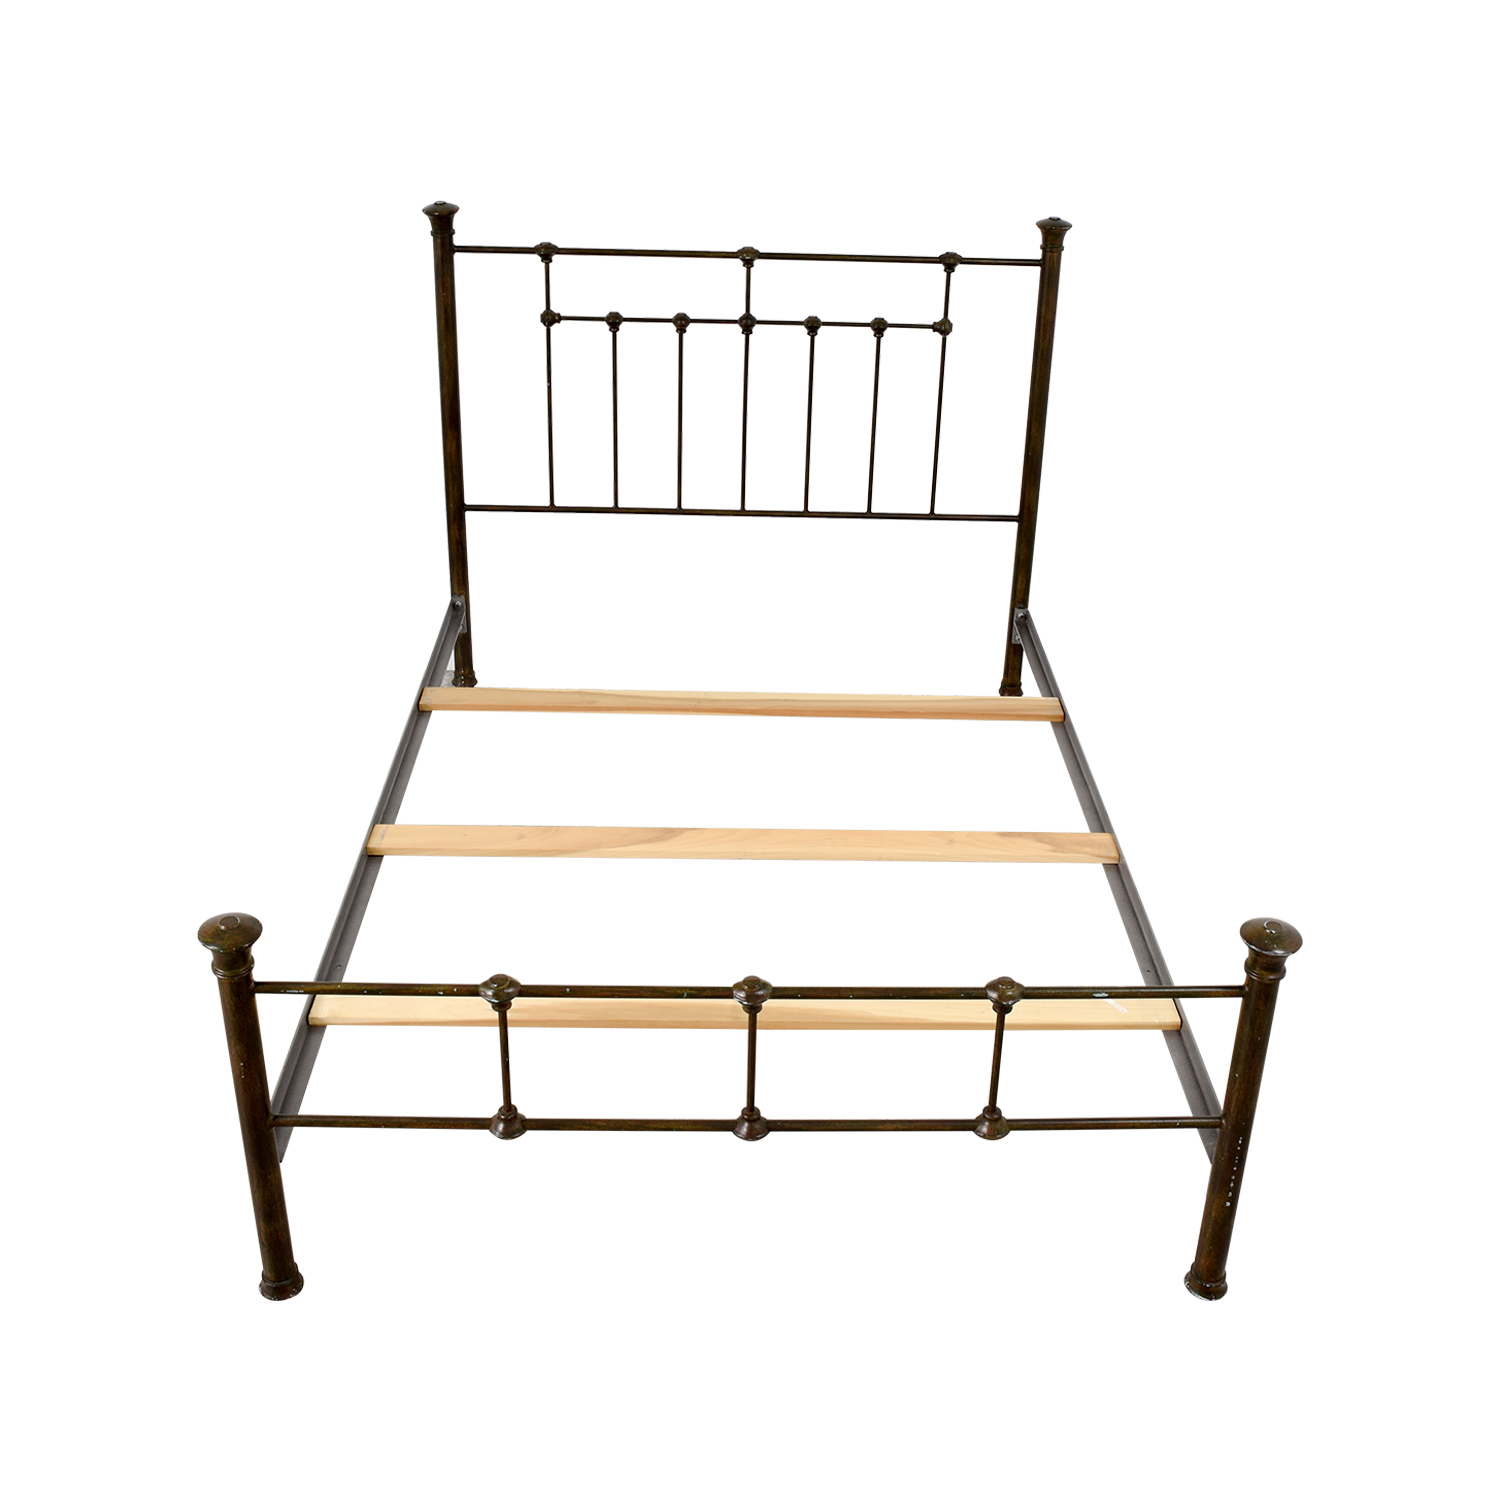 Pottery Barn Queen Iron Bed Frame / Bed Frames